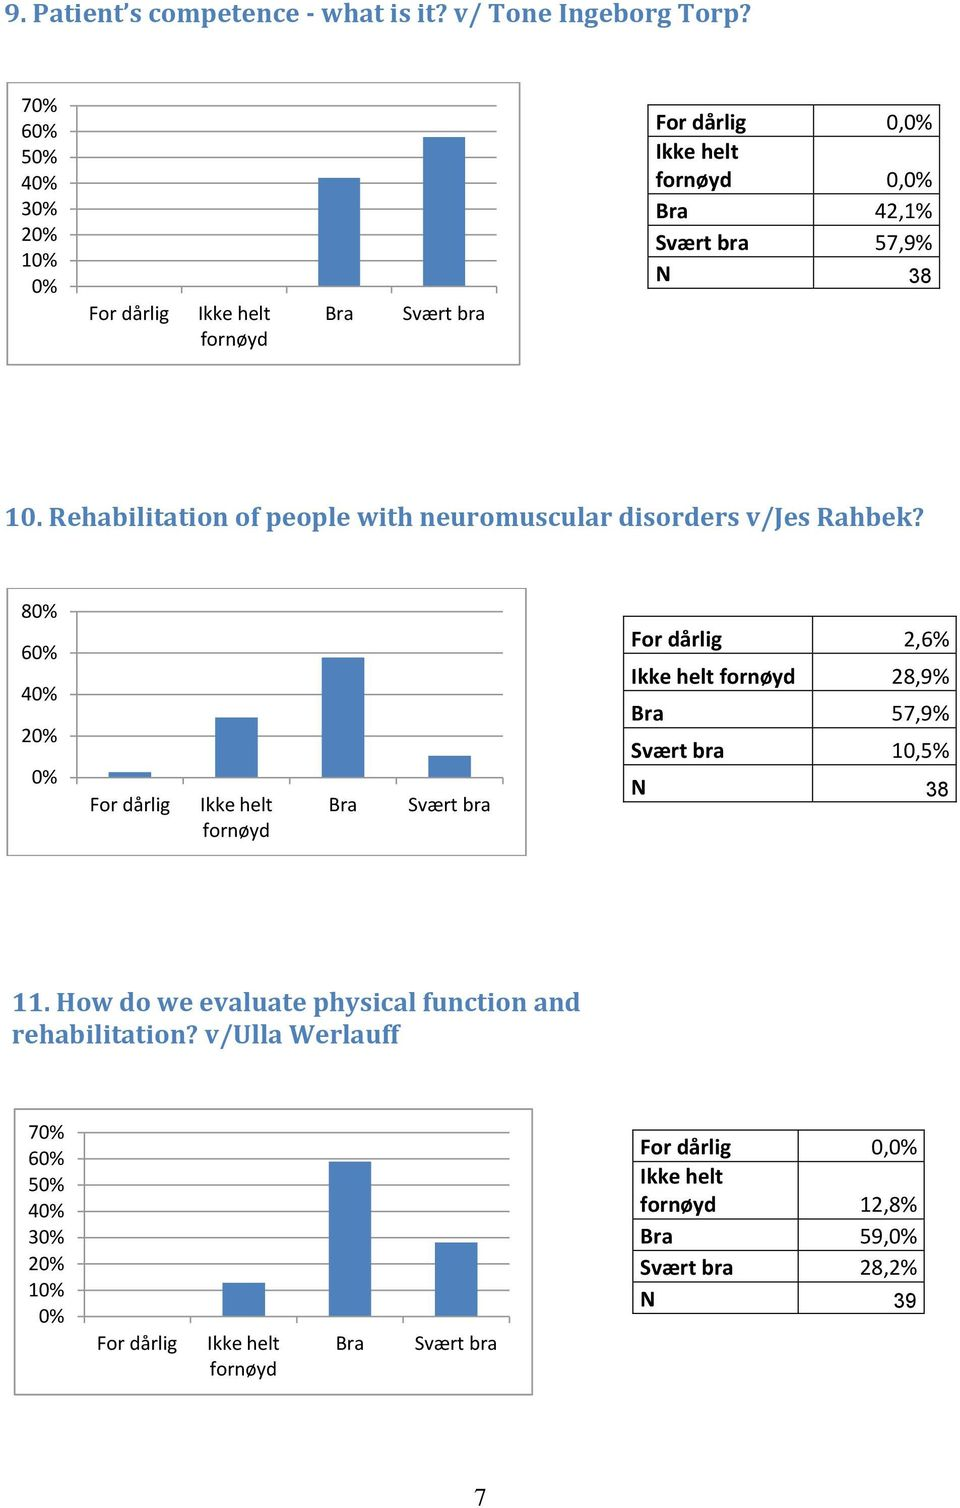 Rehabilitation of people with neuromuscular disorders v/jes Rahbek?